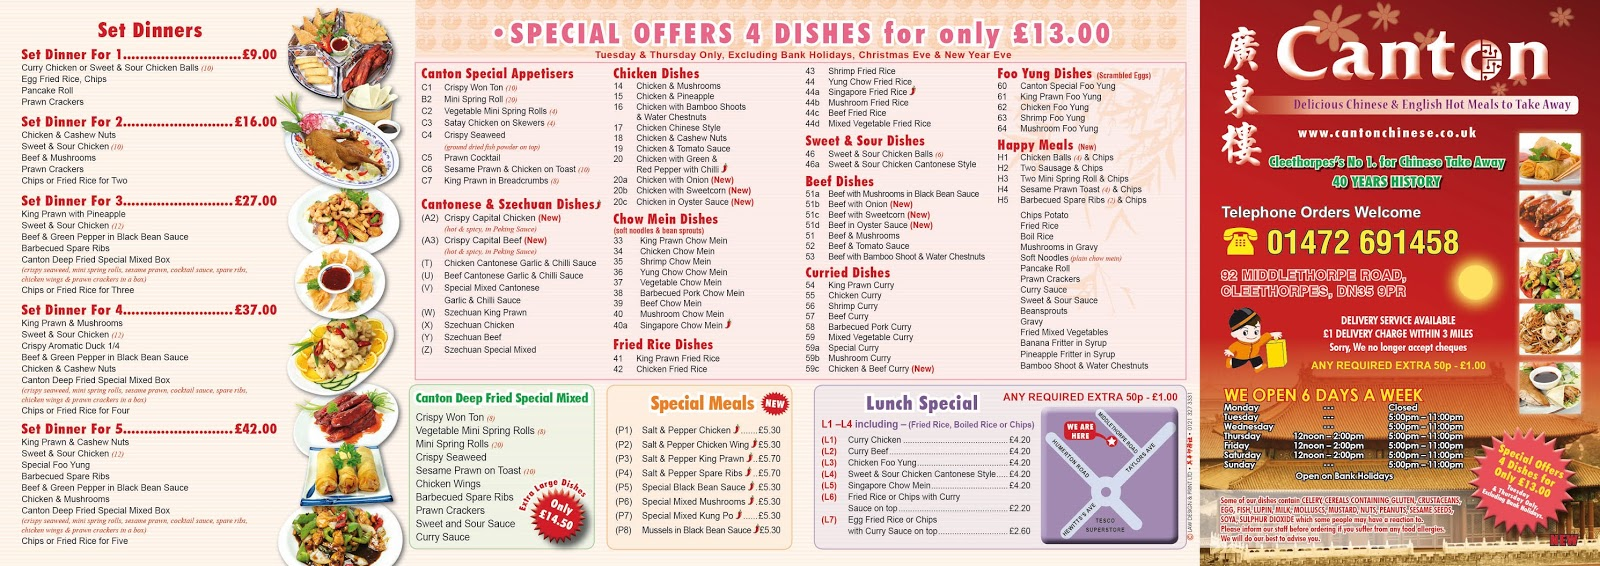 canton chinese  english hot meals to take away